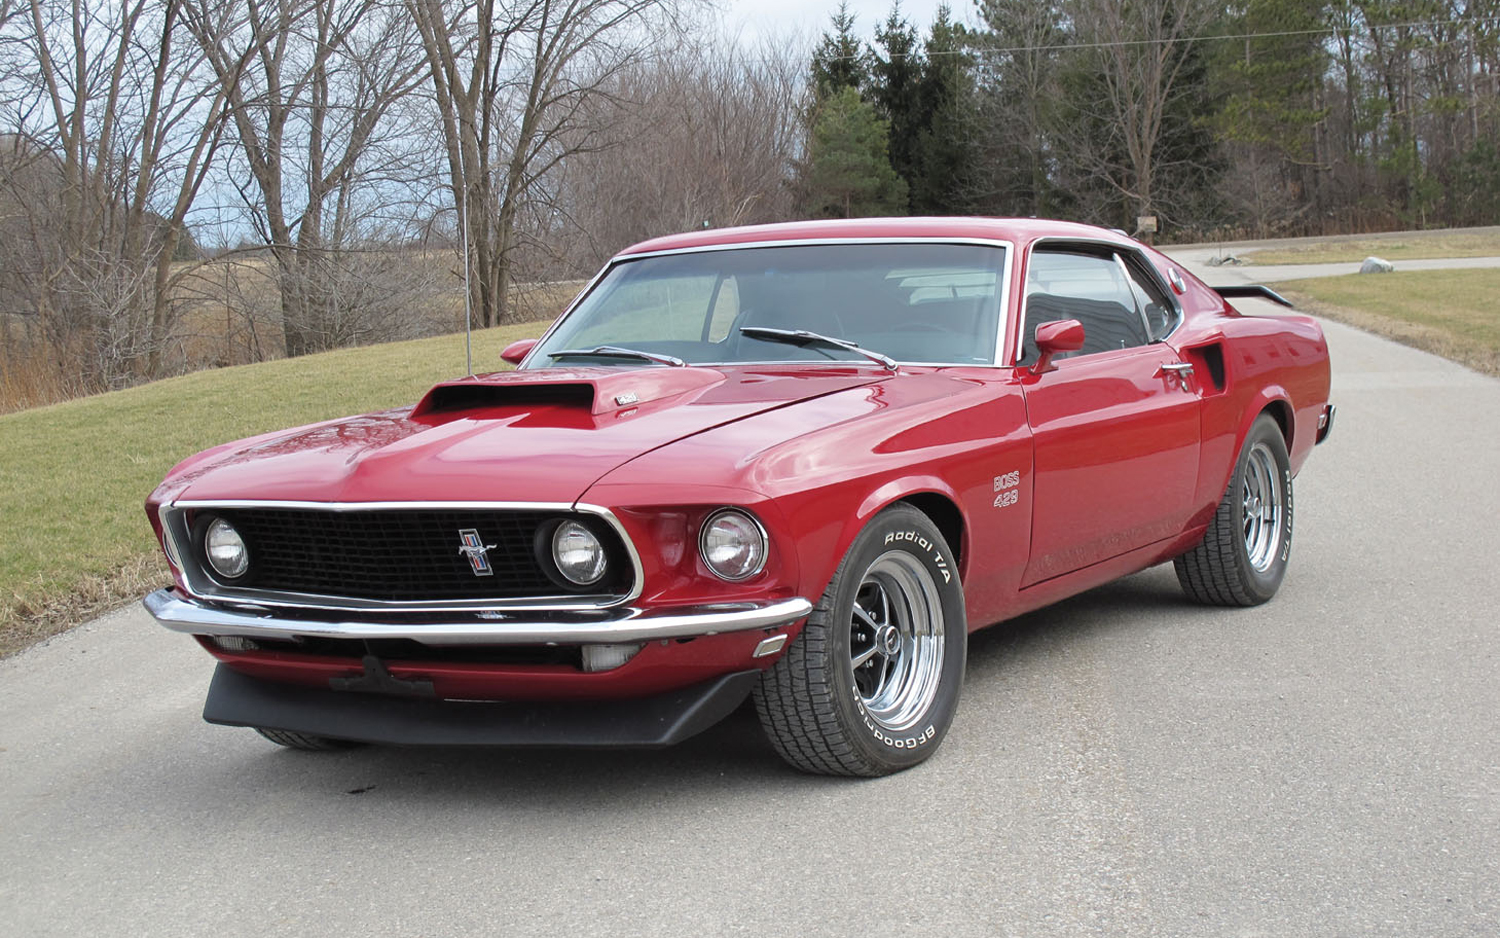 Jacques villeneuves 1969 ford mustang boss 429 other rare cars headline auction